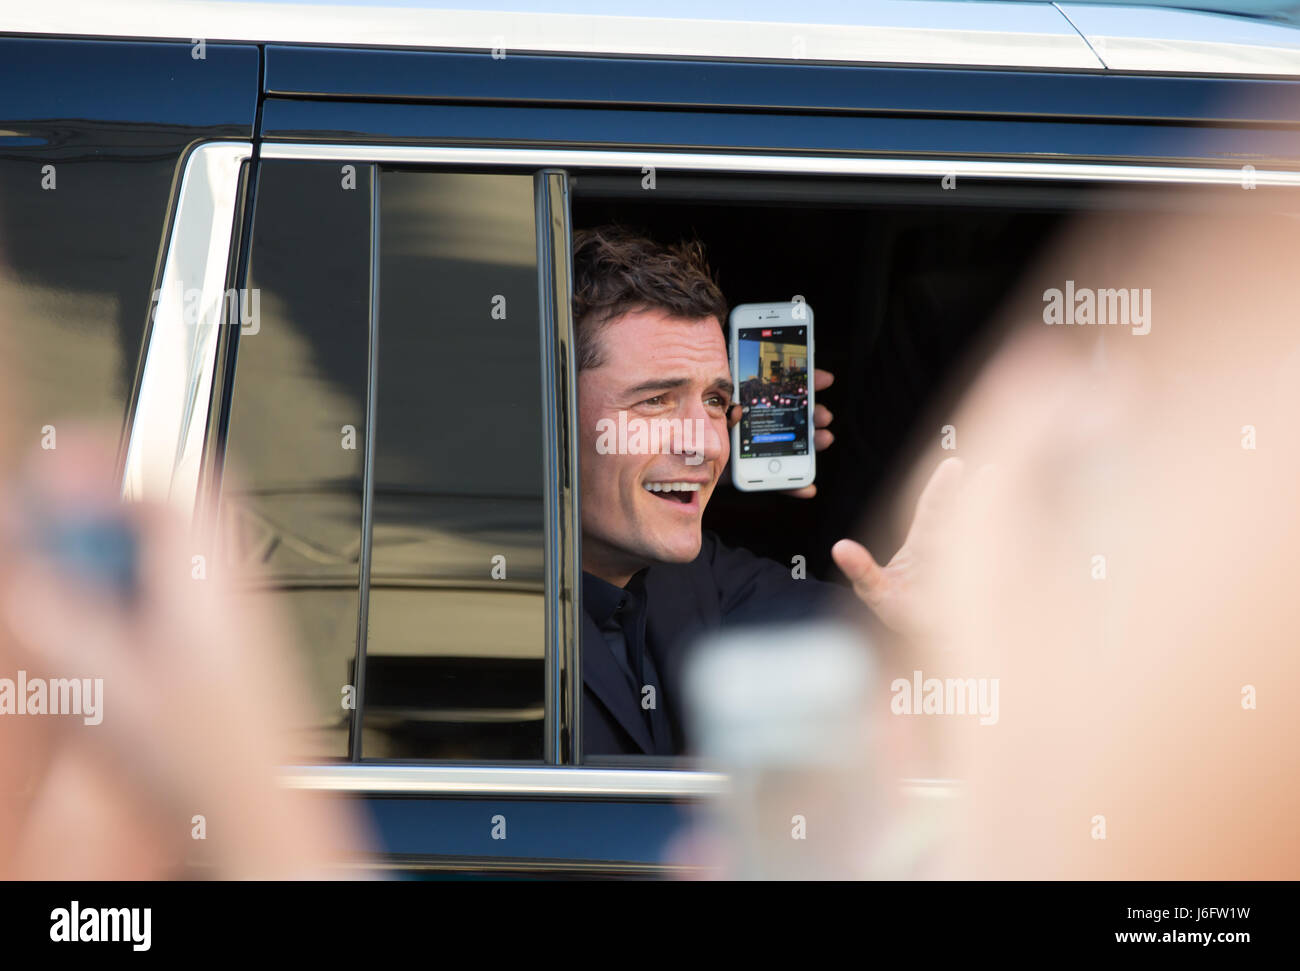 Actor Orlando Bloom attends the premiere of Disney's 'Pirates Of The Caribbean: Dead Men Tell No Tales' - Stock-Bilder